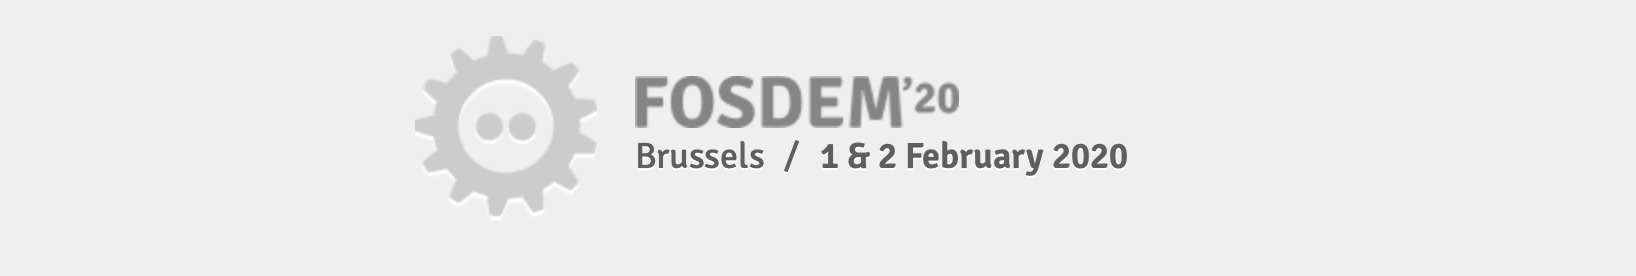 diagrams.net is sponsoring the FOSDEM'20 conference for open source developers